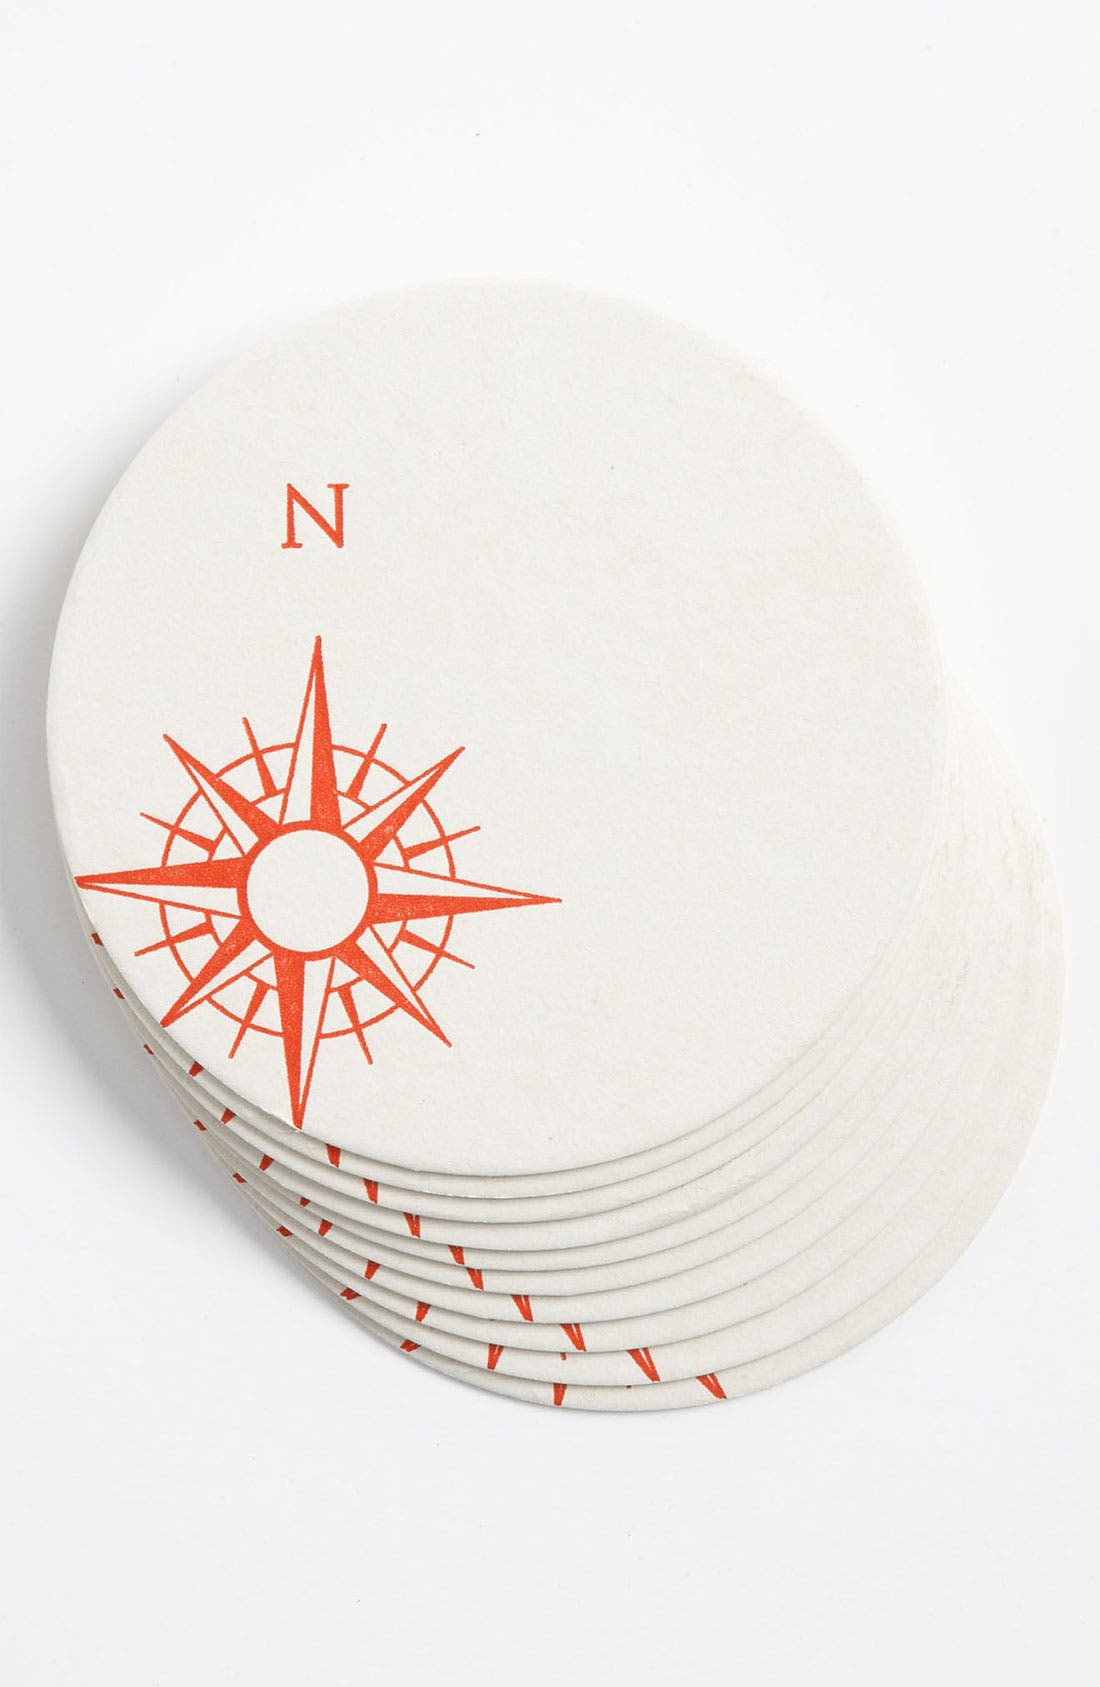 Main Image - 'Compass' Letterpress Coasters (Set of 10)